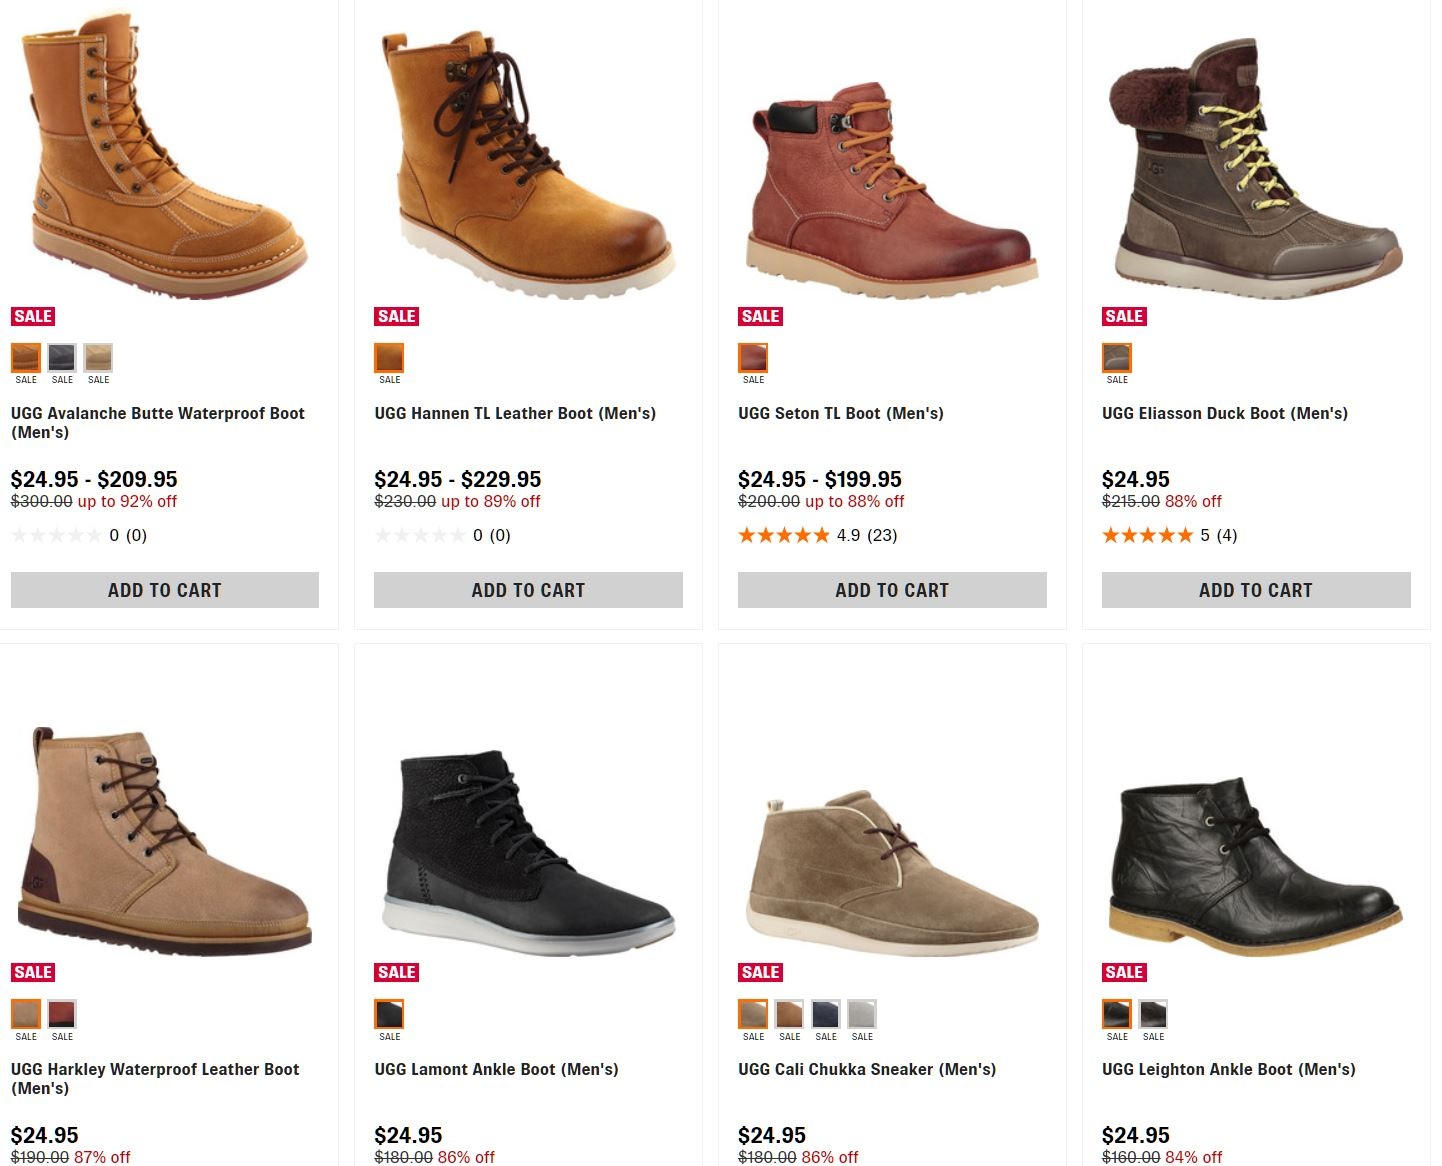 31db783a3fc 54437065_2486893701543599_421031469318668288_n. 90% off UGG Boots for Men  and Women + Free Shipping!